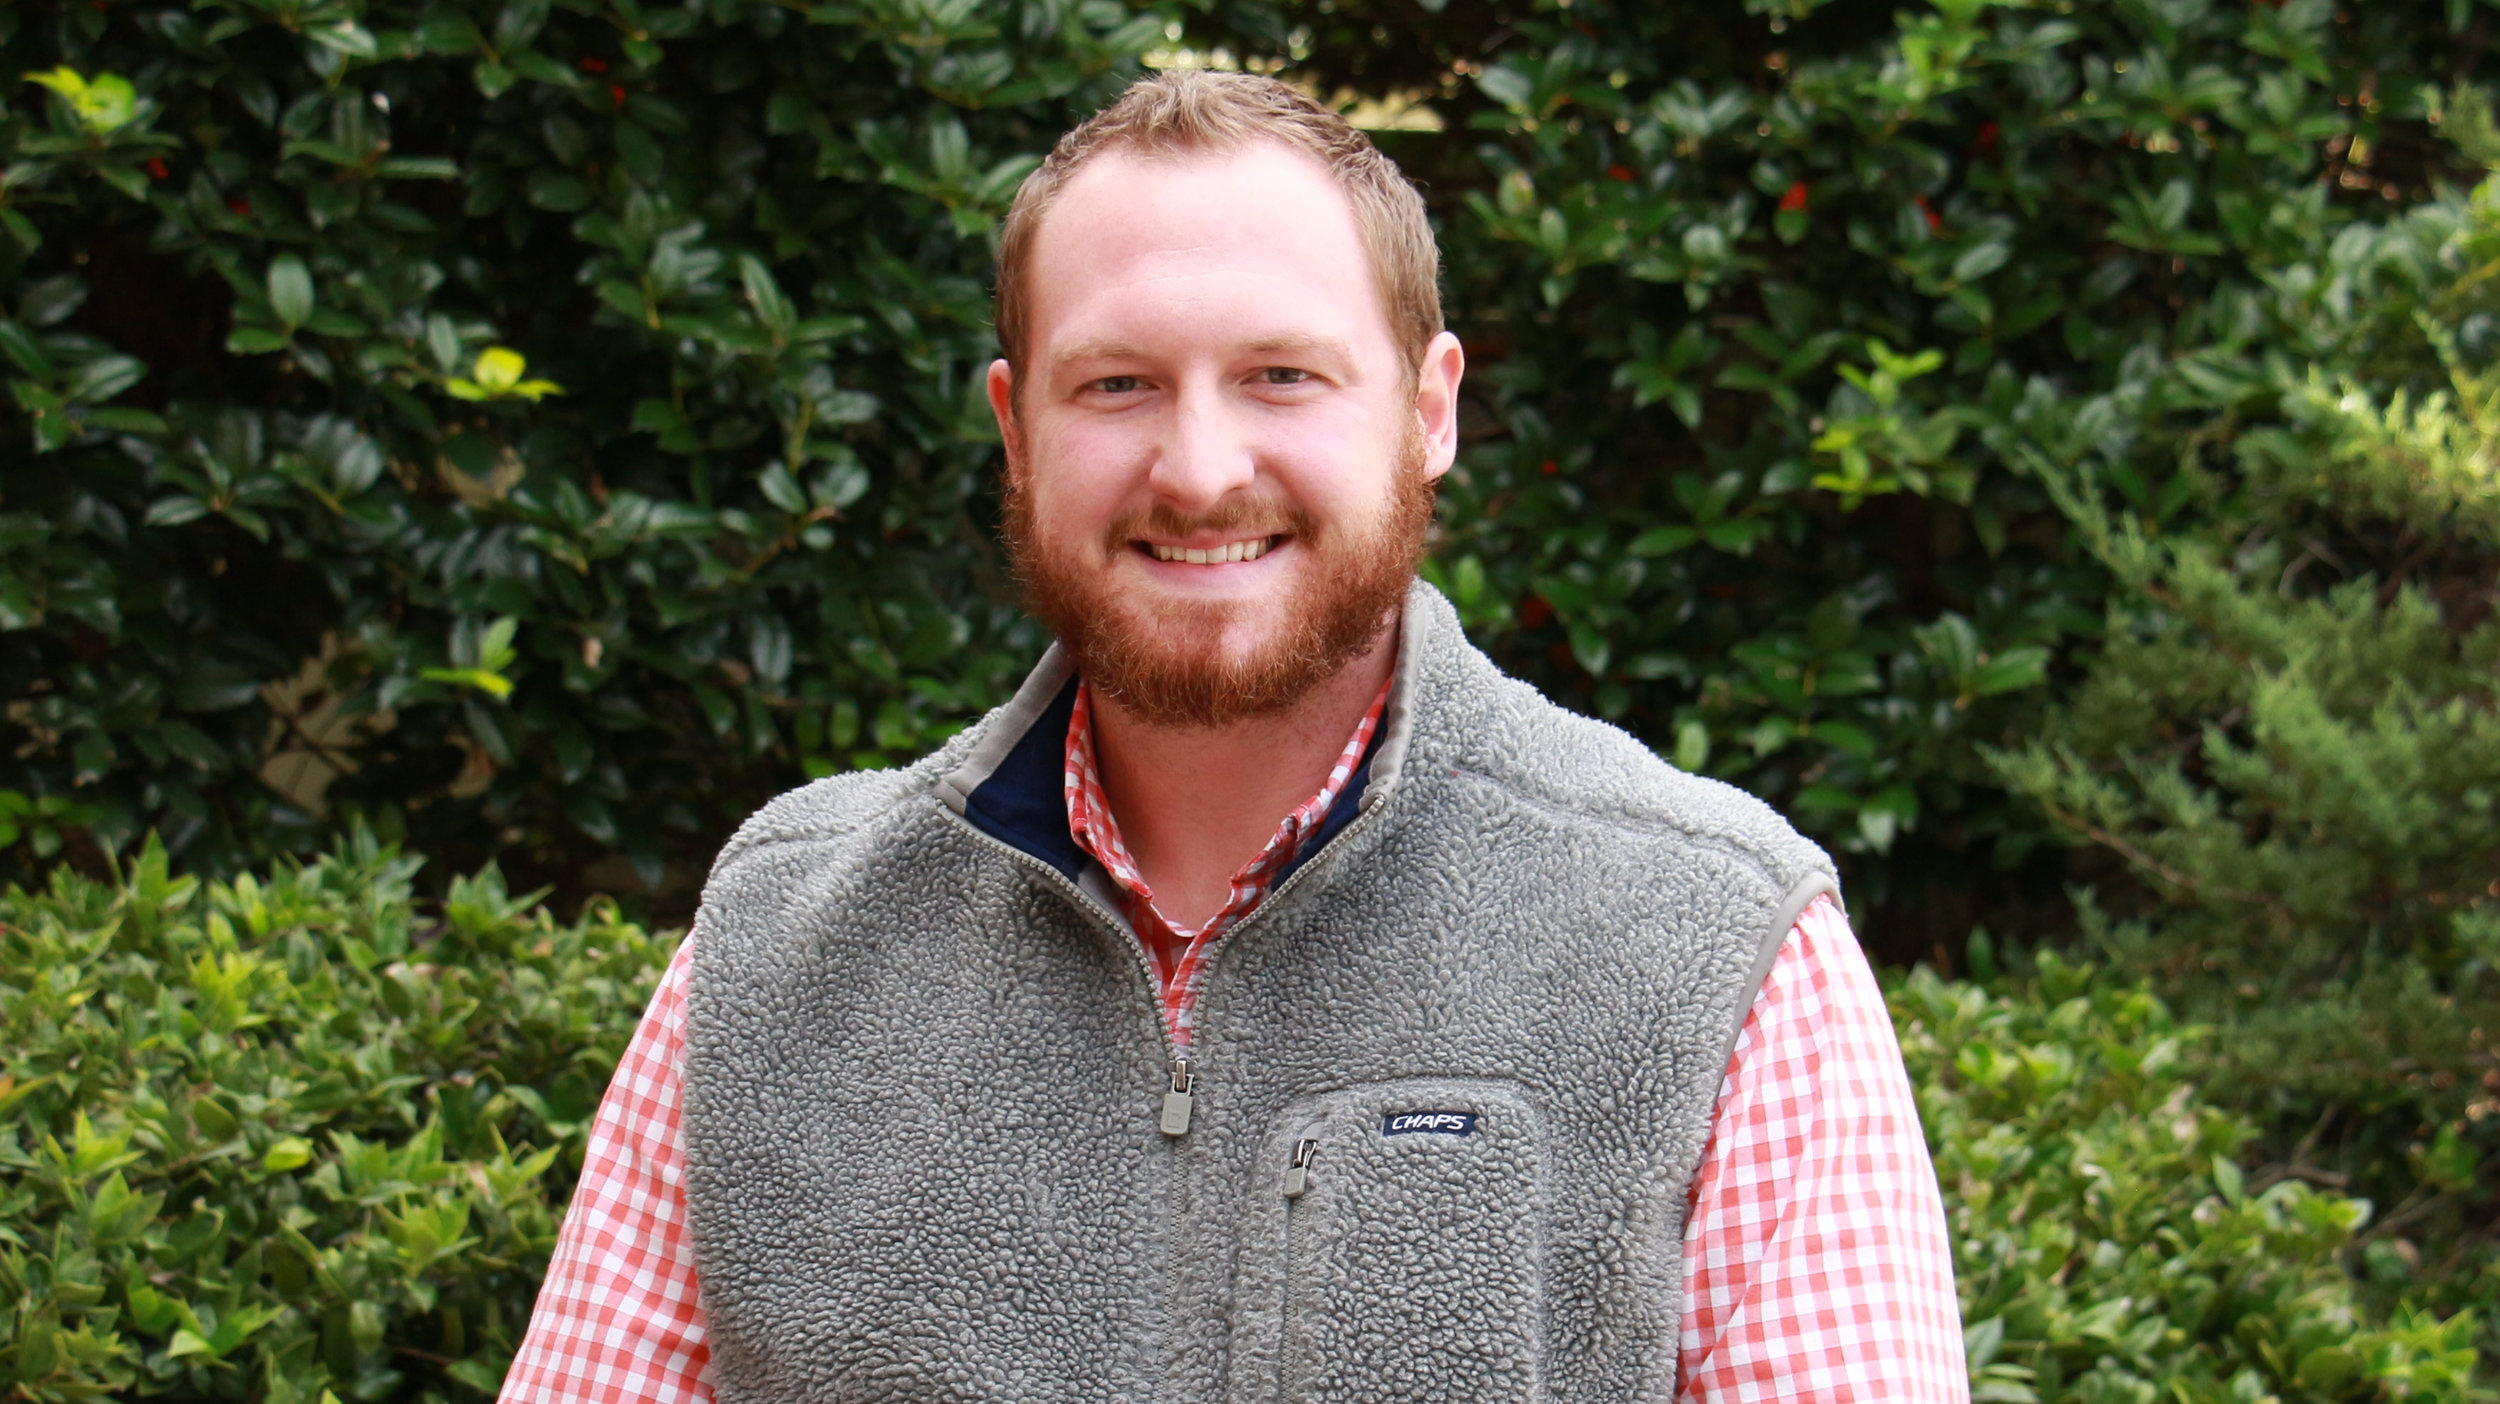 Ryan Gaines, Minister of College